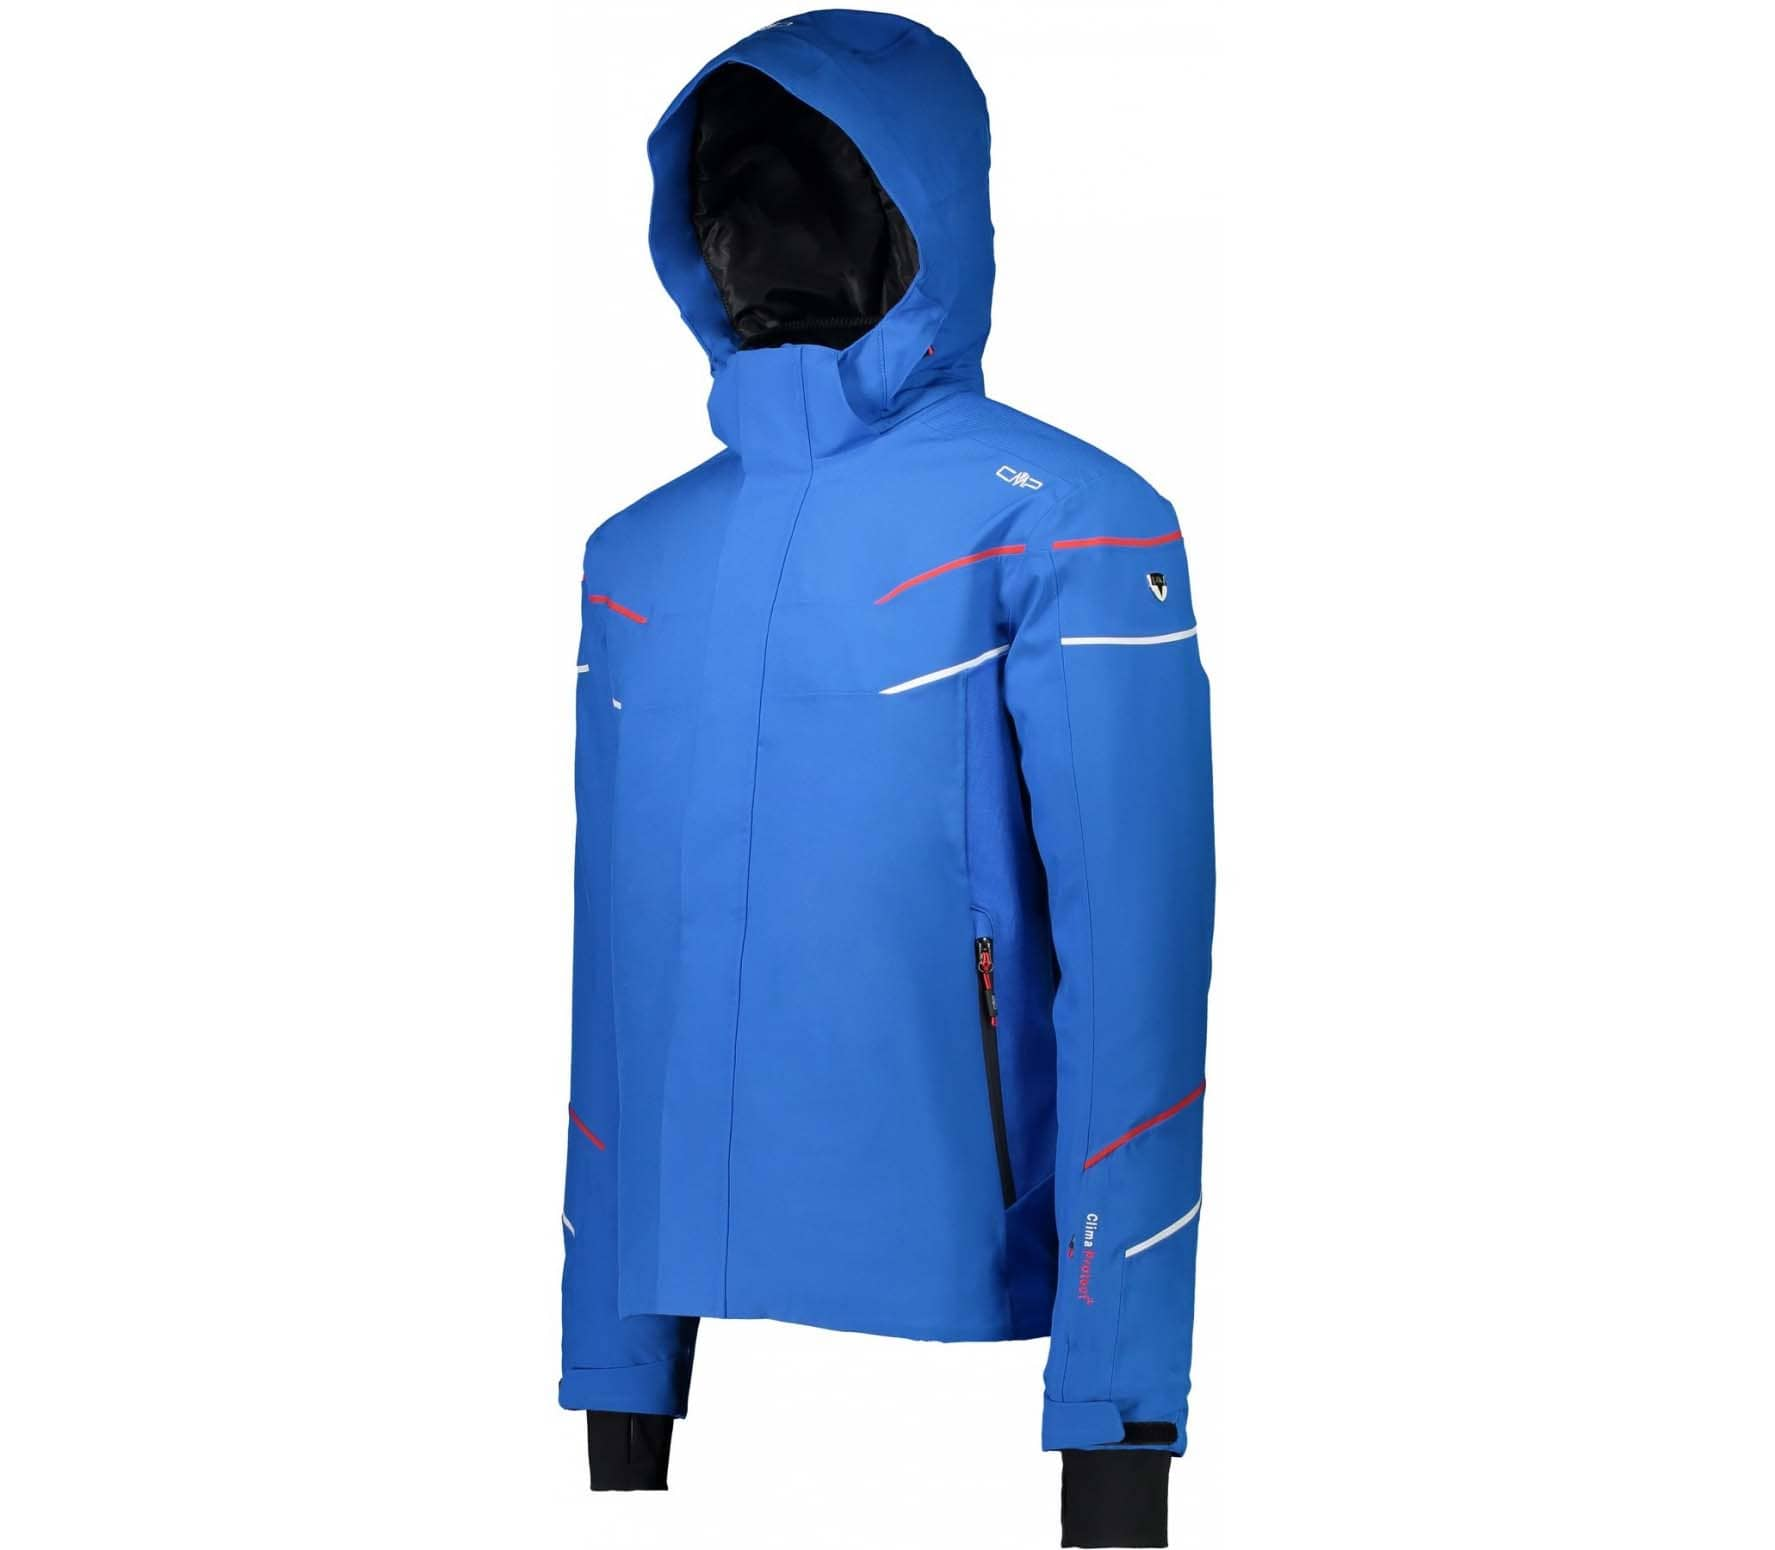 CMP Zip Hood men's skis jacket (blue)